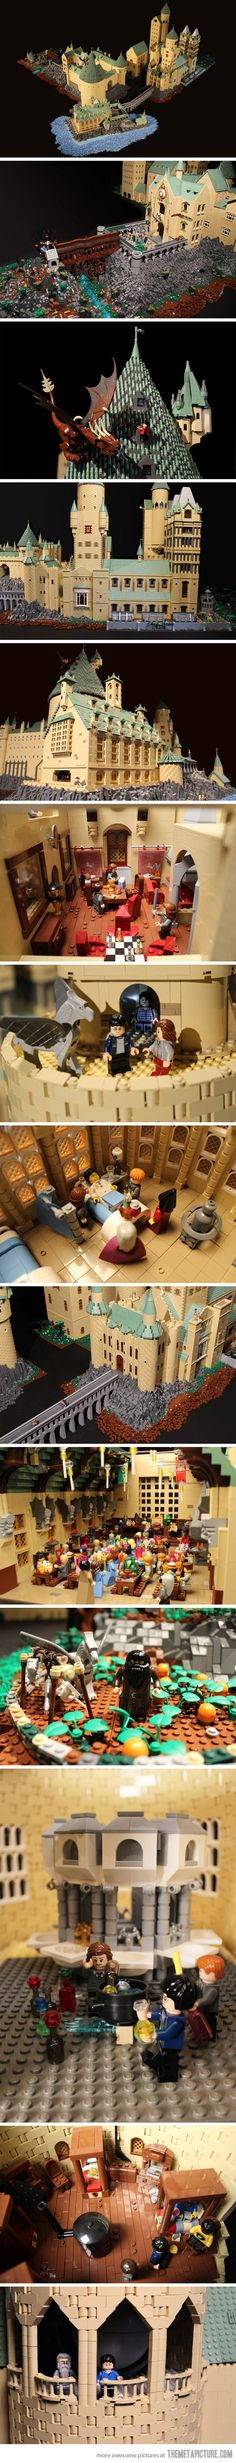 Hogwarts made entirely out of Lego! The level of detail is incredible!